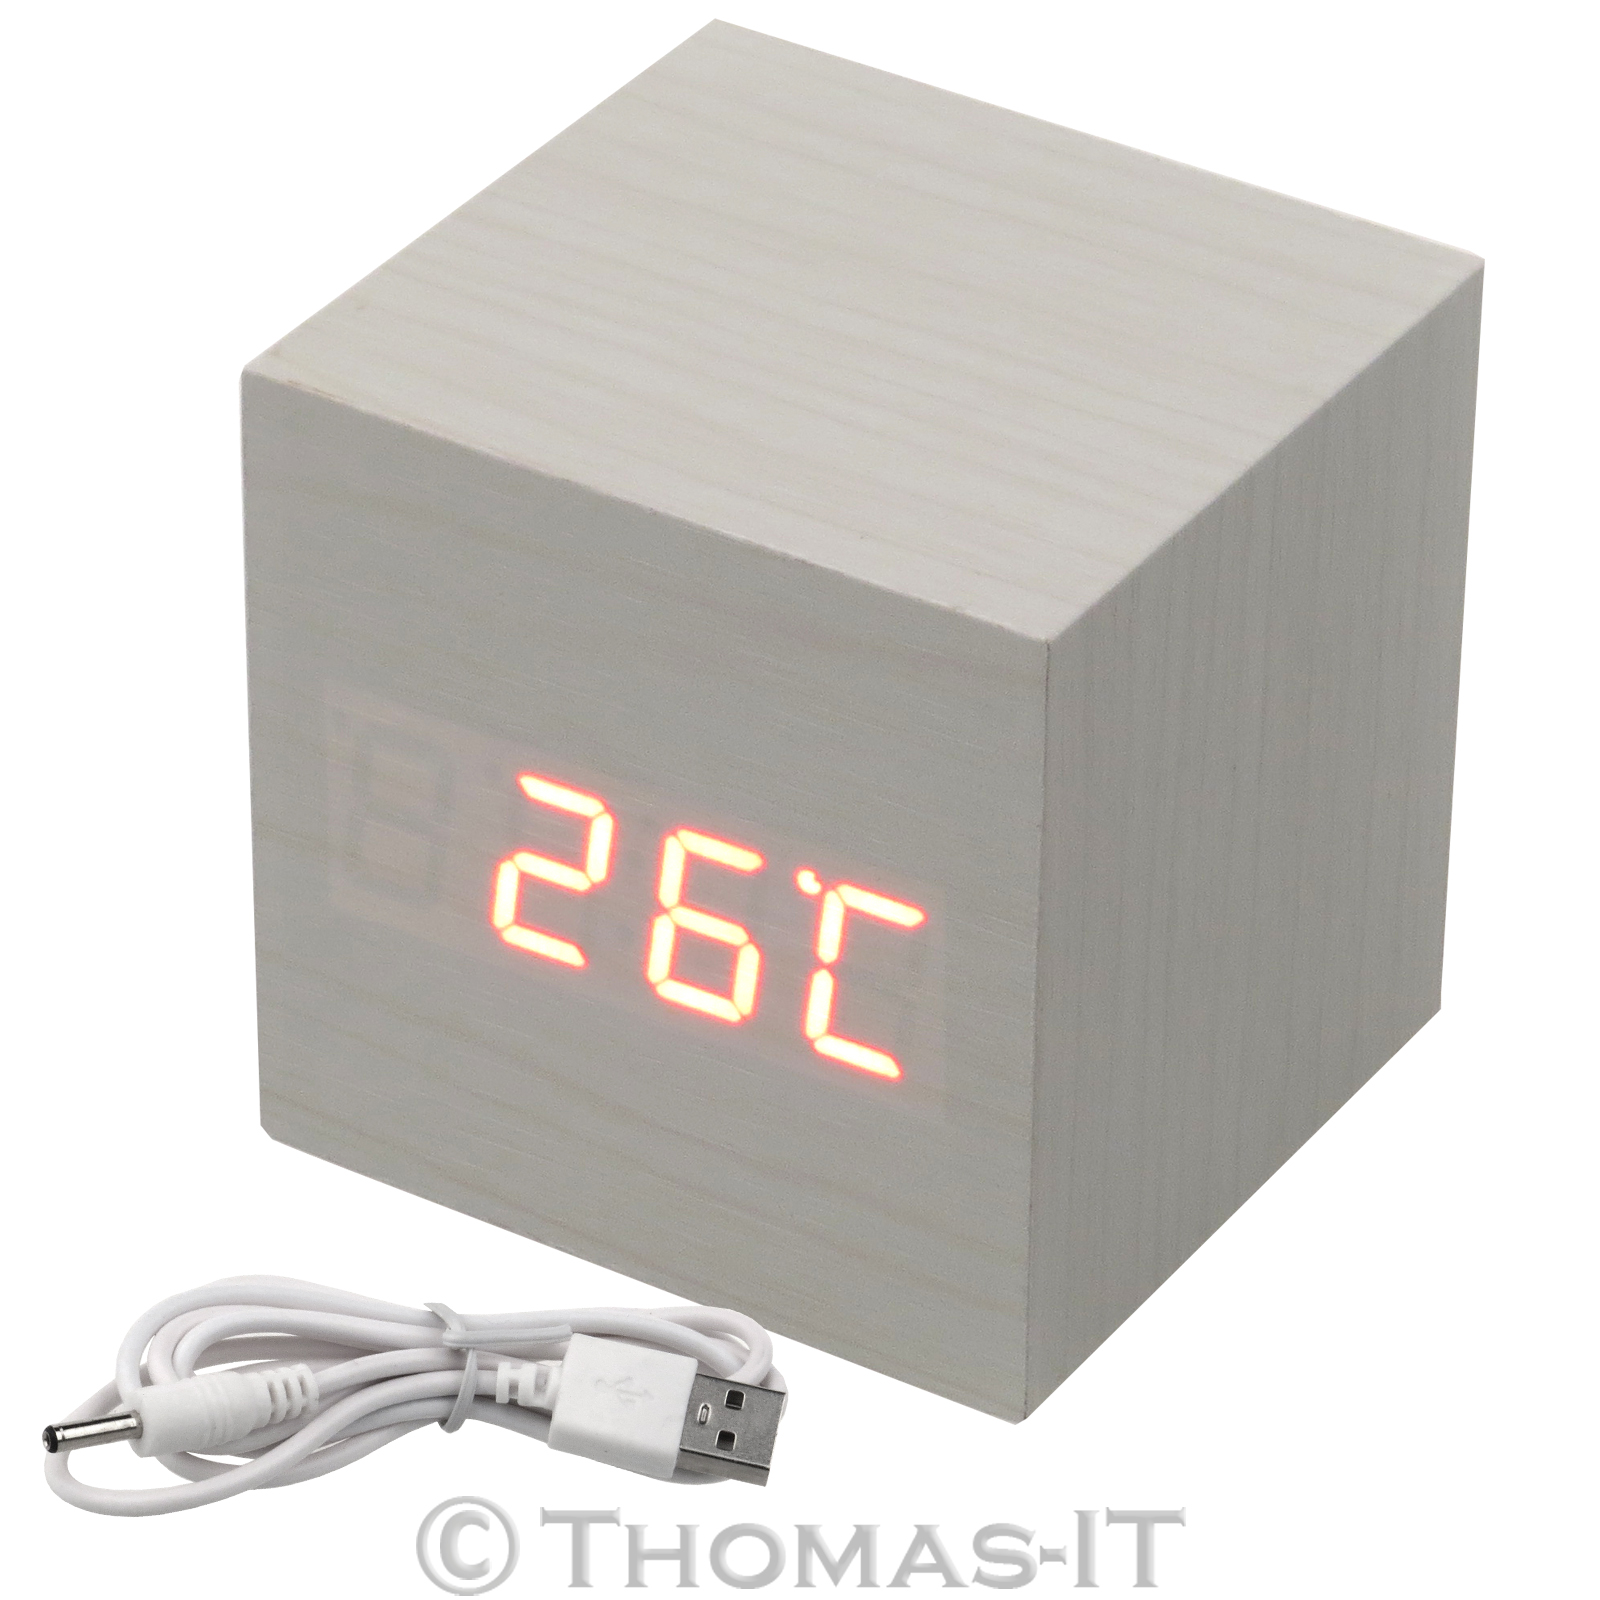 wood cube led alarm voice control digital desk clock. Black Bedroom Furniture Sets. Home Design Ideas